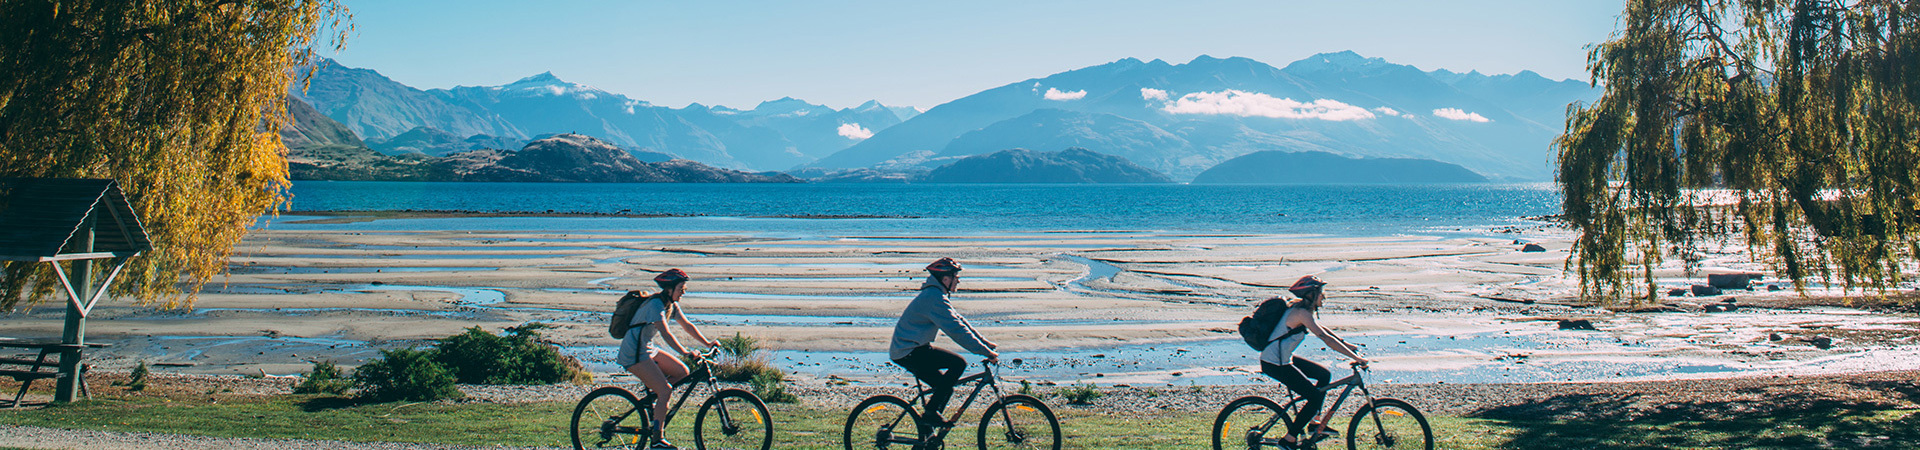 Lake Wanaka cyclists